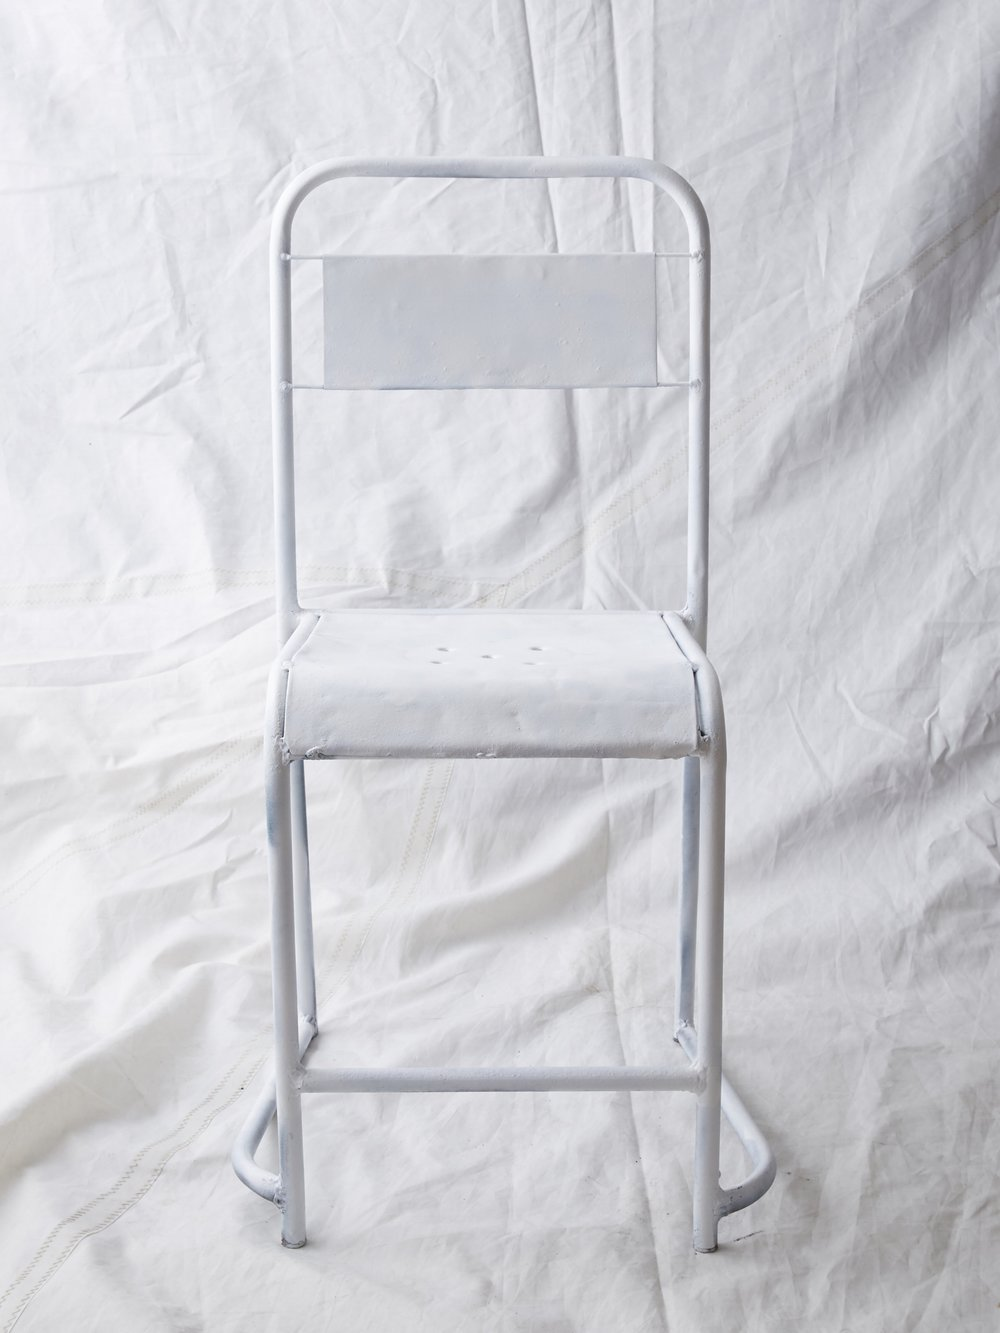 "CH038 Matte white painted steel 33"" H x 14"" W x 16"" D $75/week Set of 1"